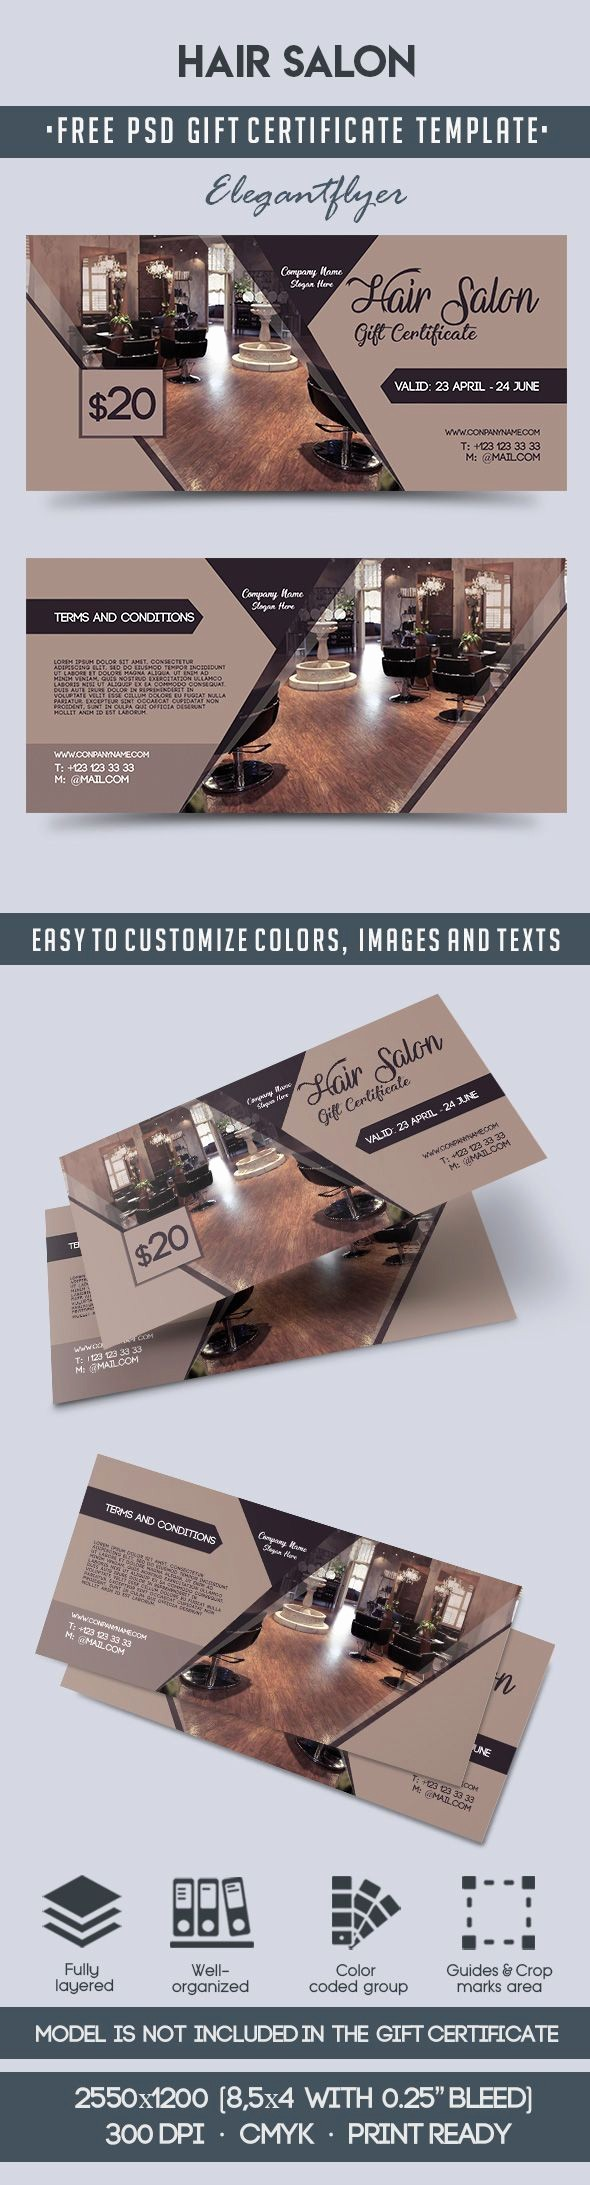 Hair Salon Gift Certificate Templates Awesome Hair Salon – Free Gift Certificate Psd Template – by